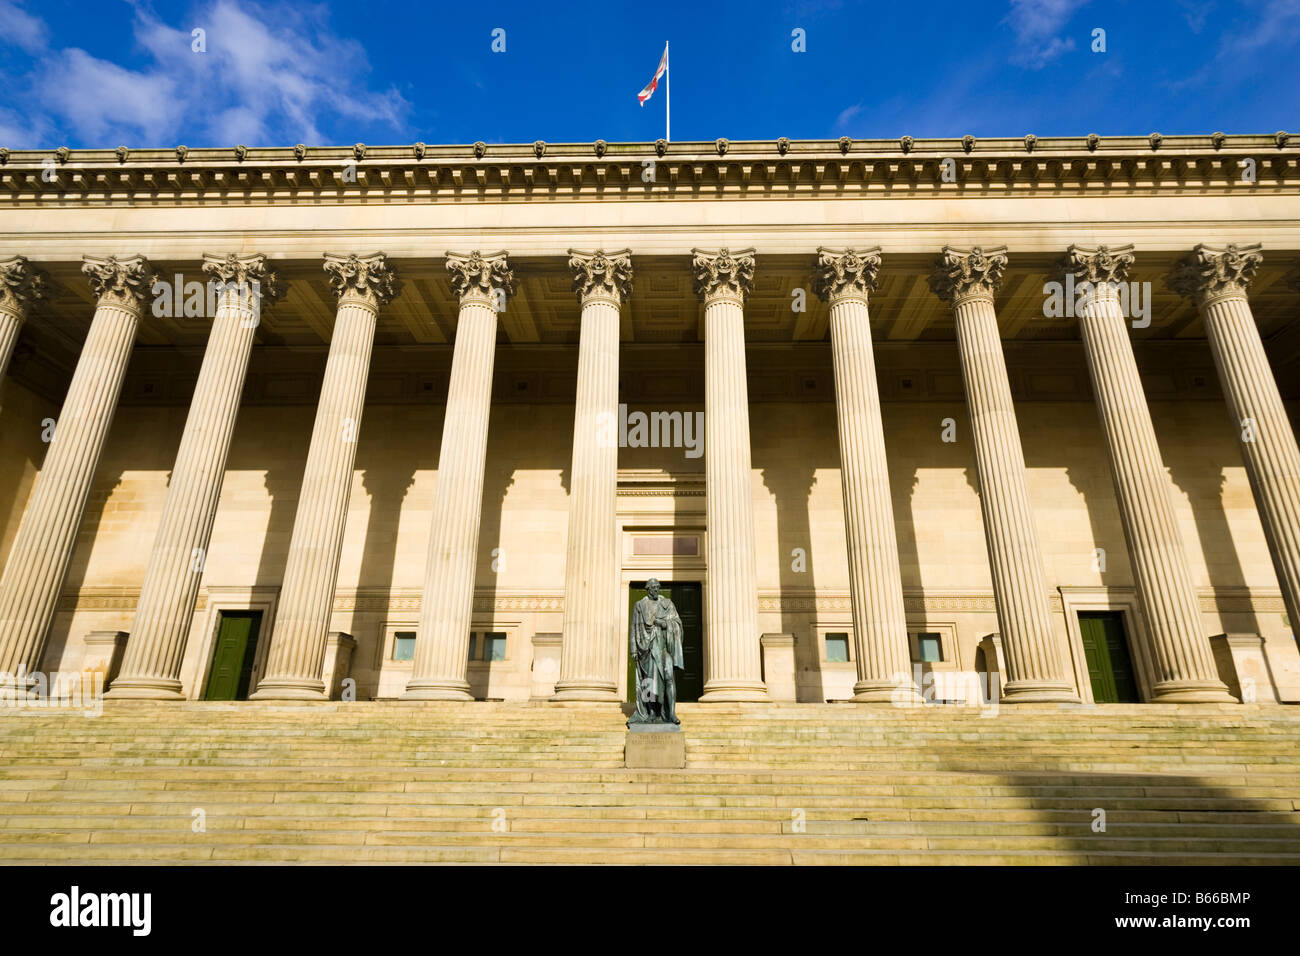 St Georges Hall, Liverpool, Merseyside, England, UK - Stock Image